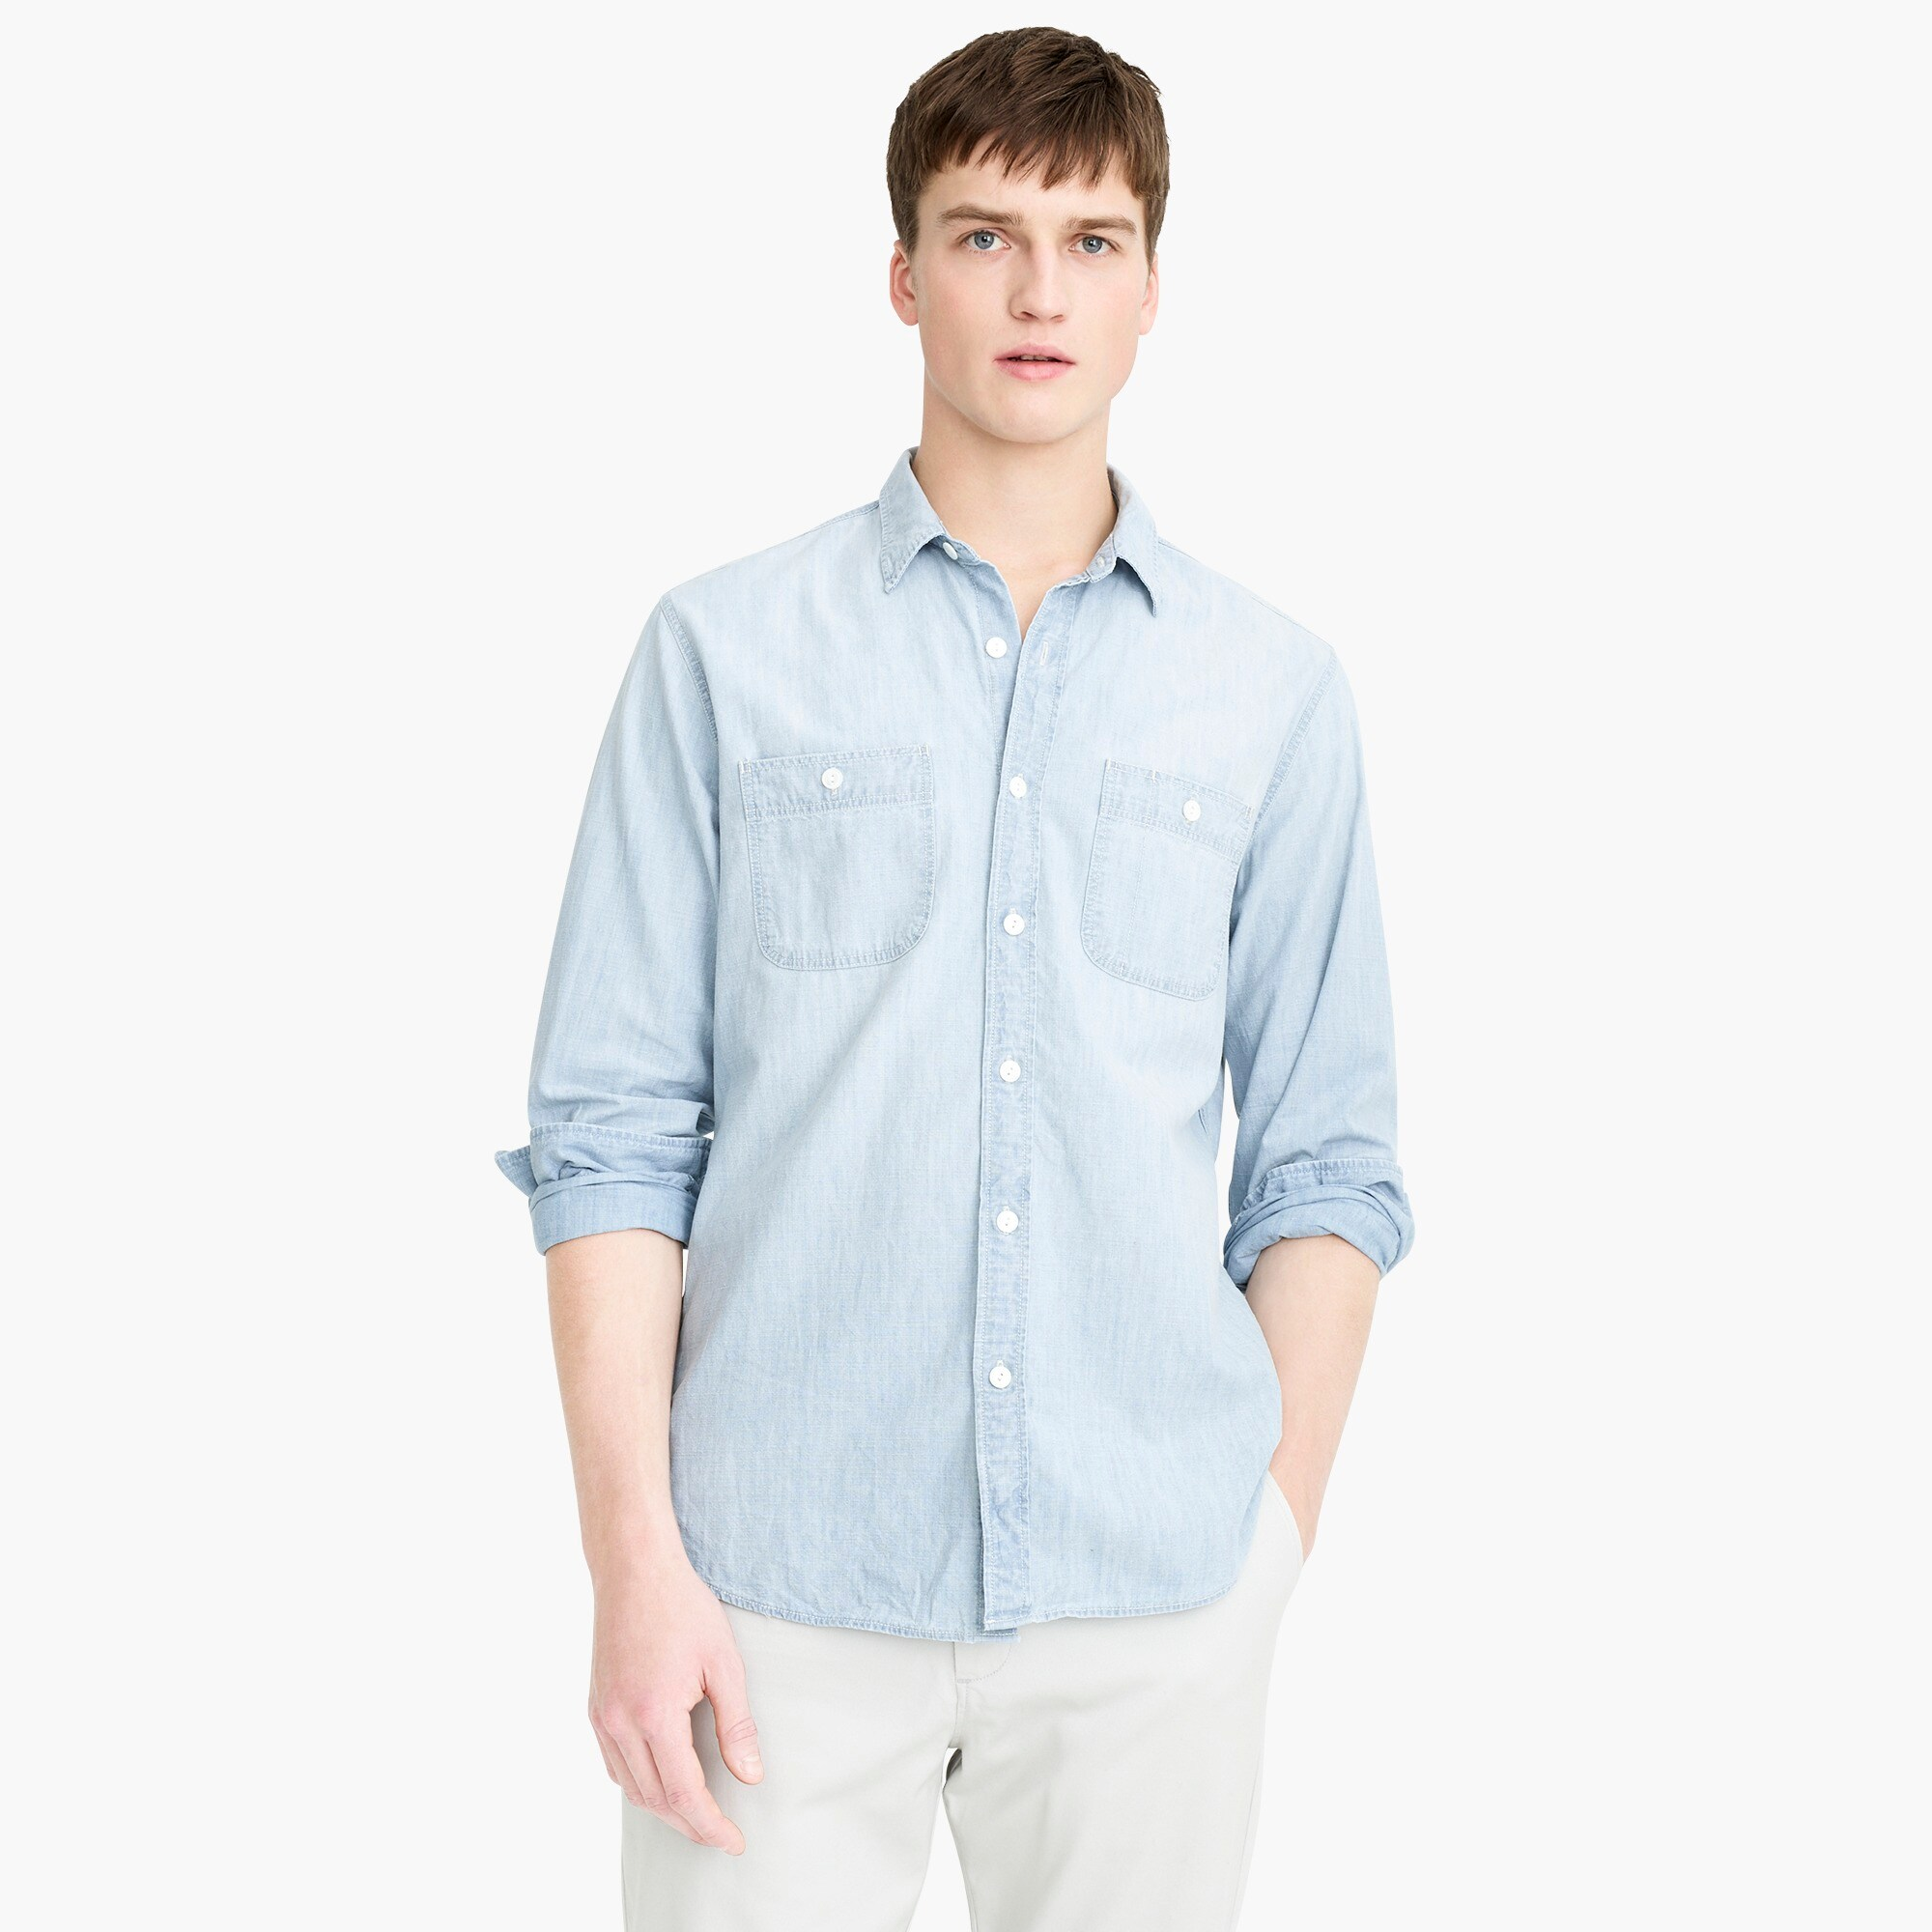 mens Chambray workshirt